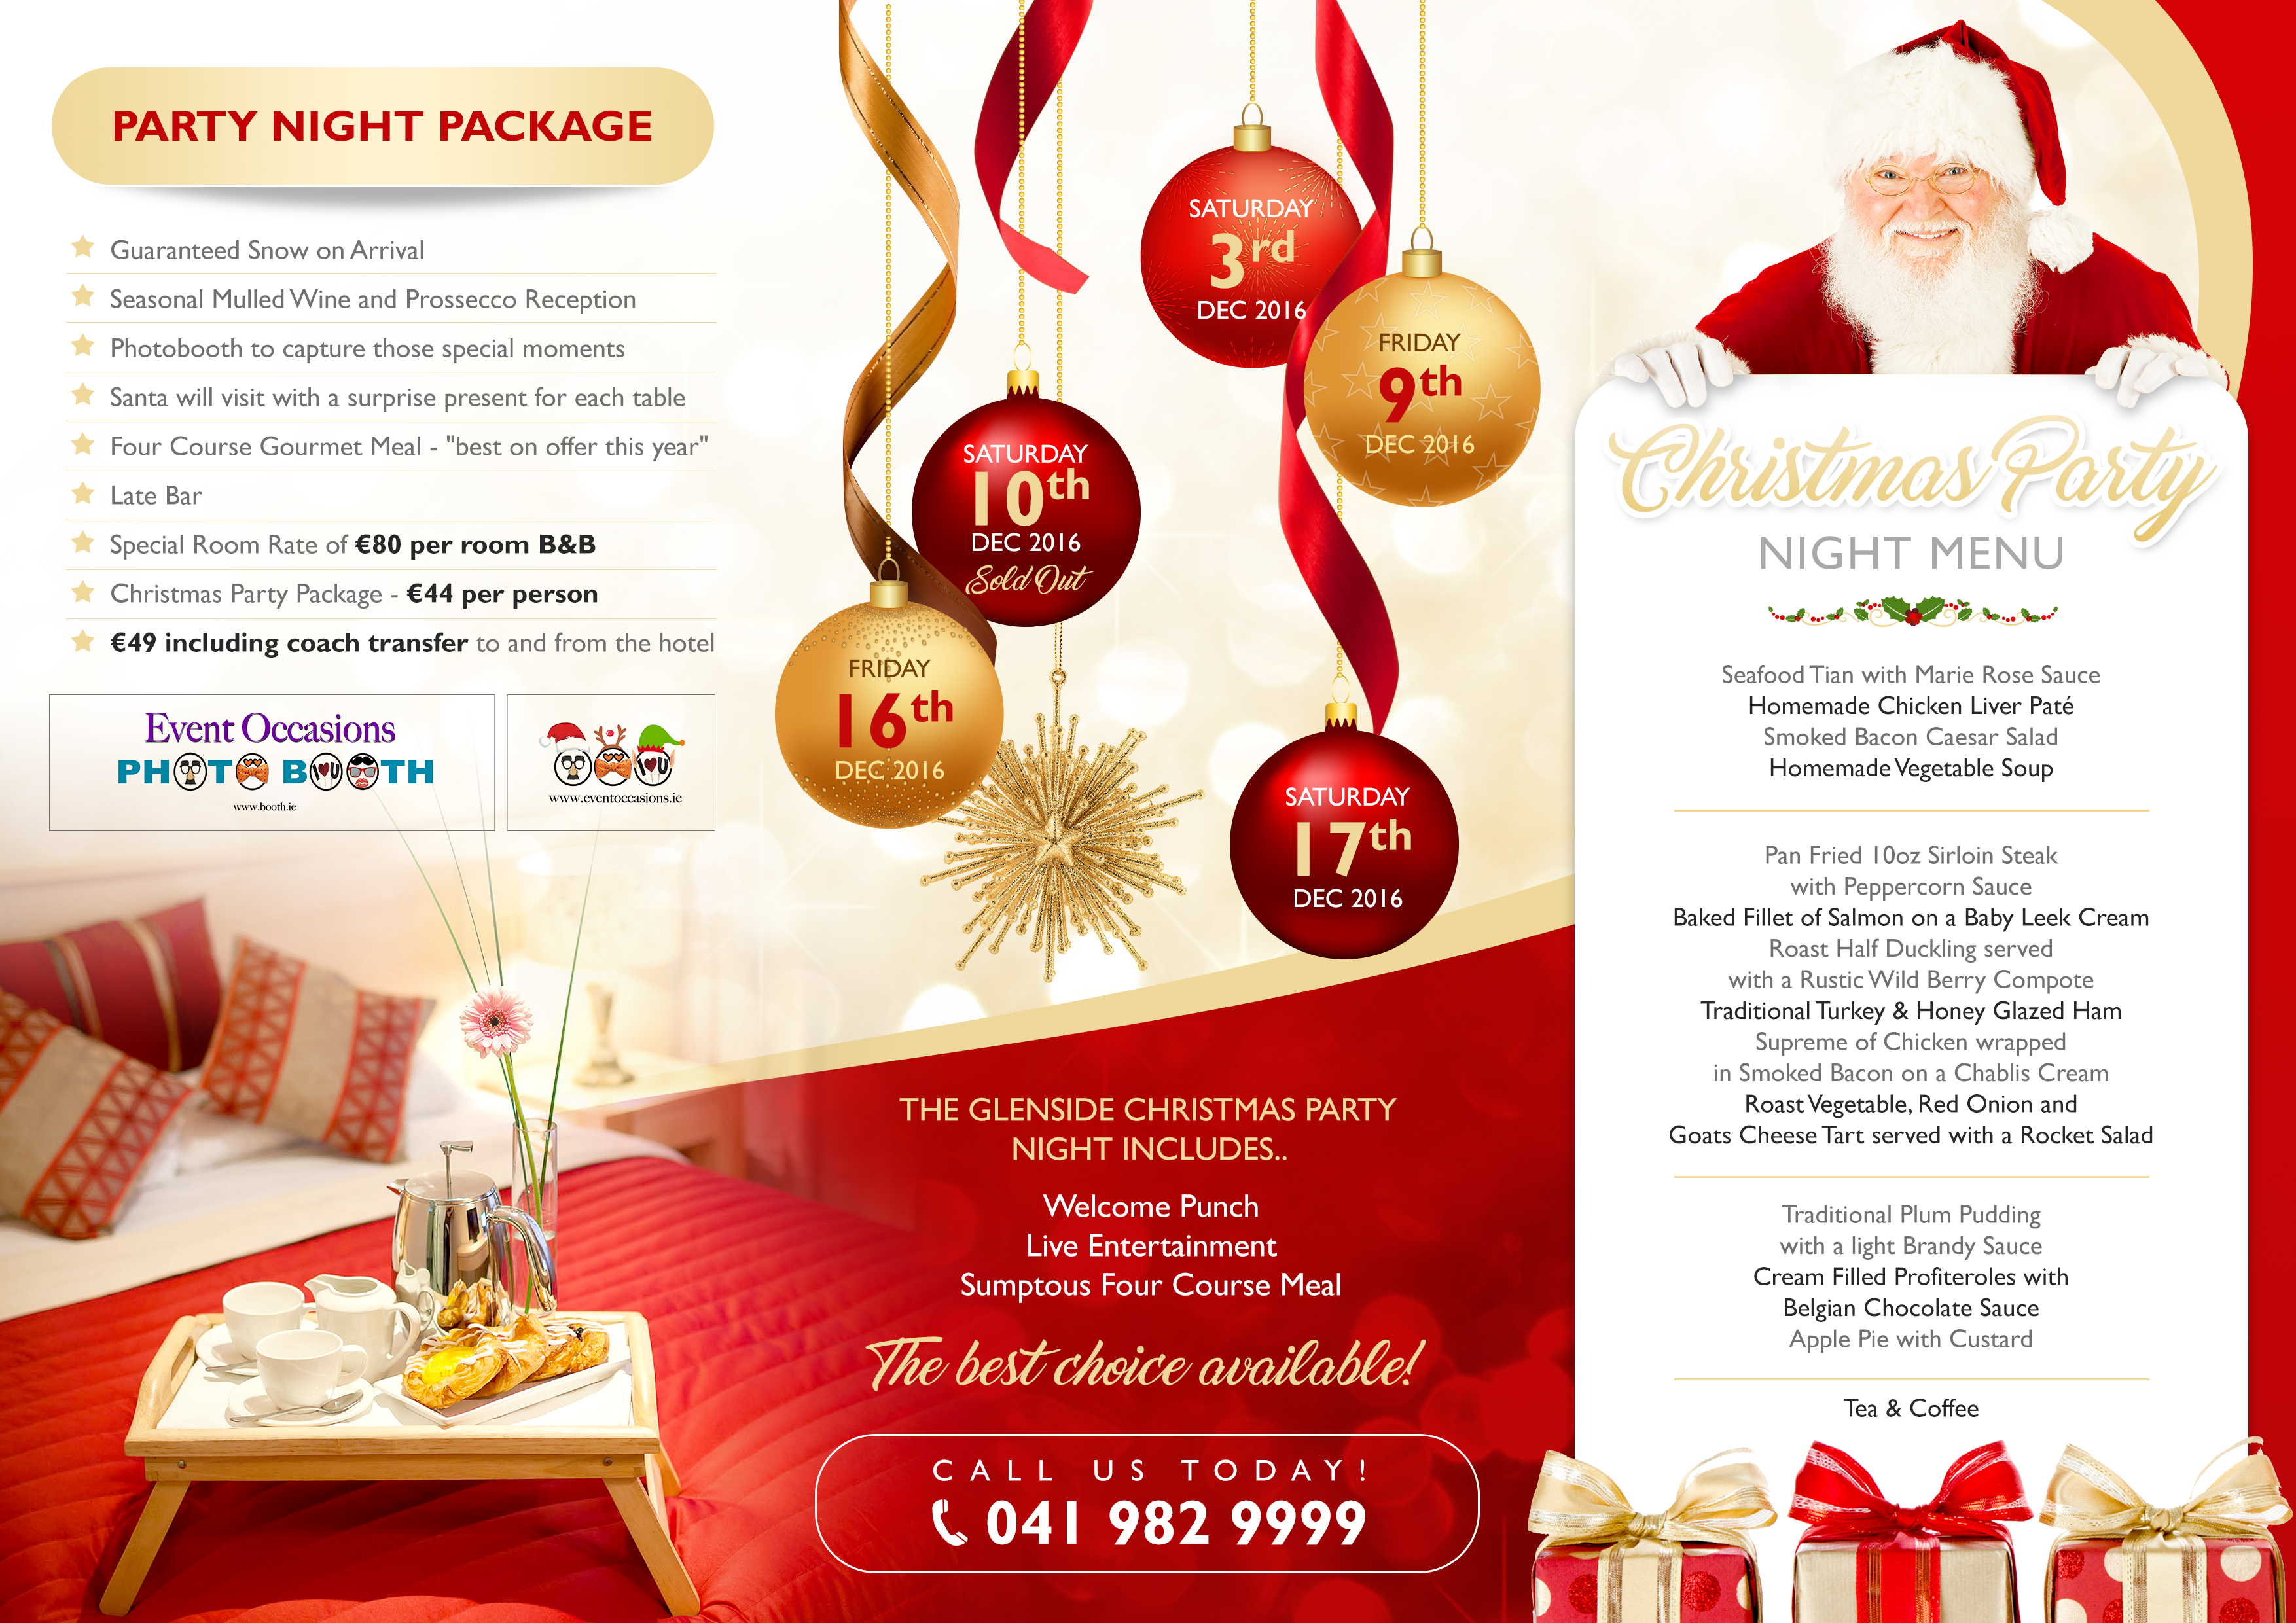 Update the Christmas Party Brochure for glensidehotel.ie